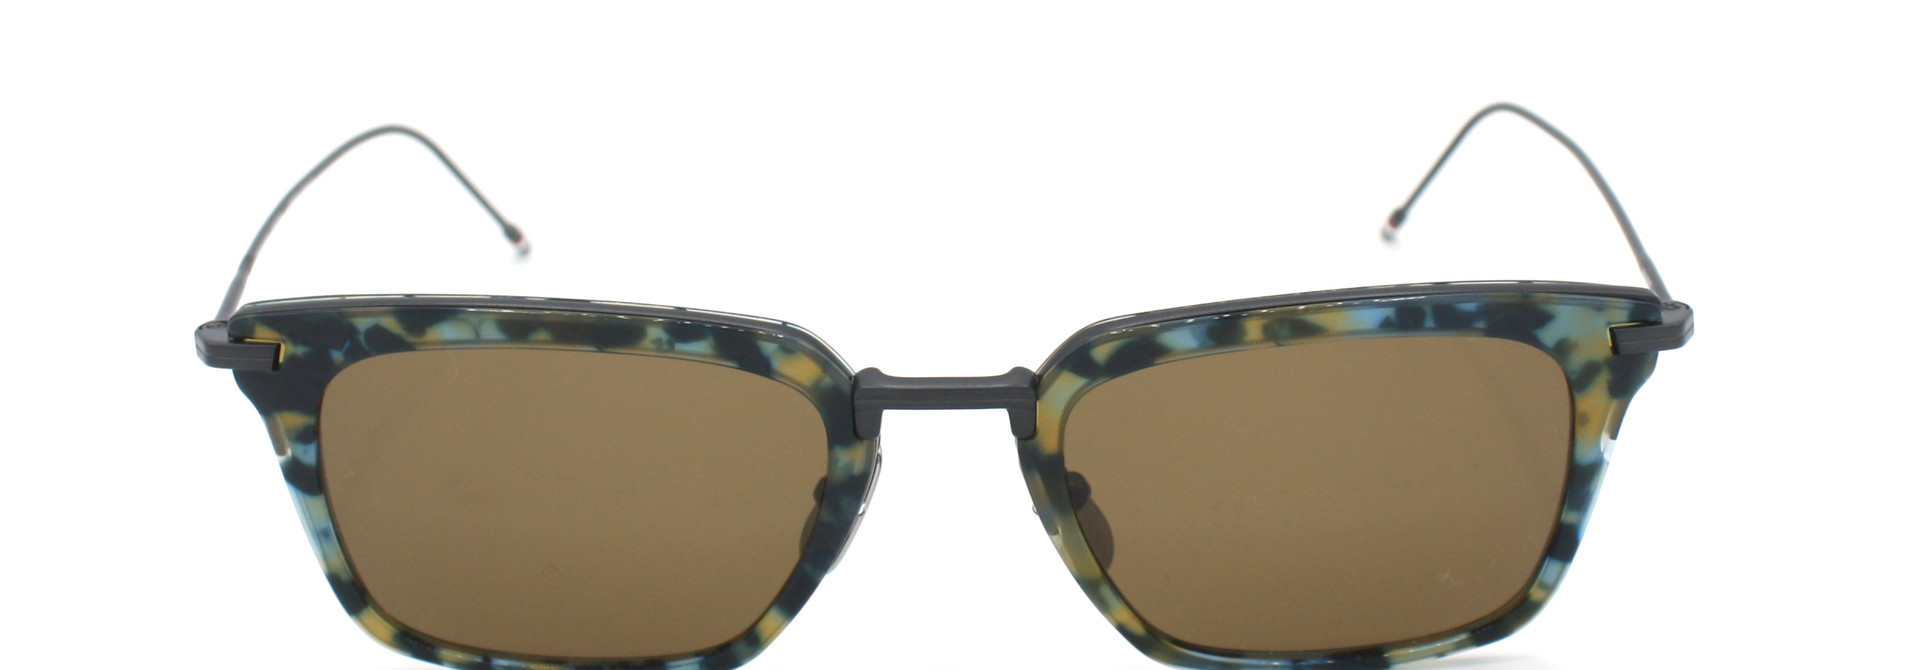 Thom Browne - TBS916 - NVY-BLK